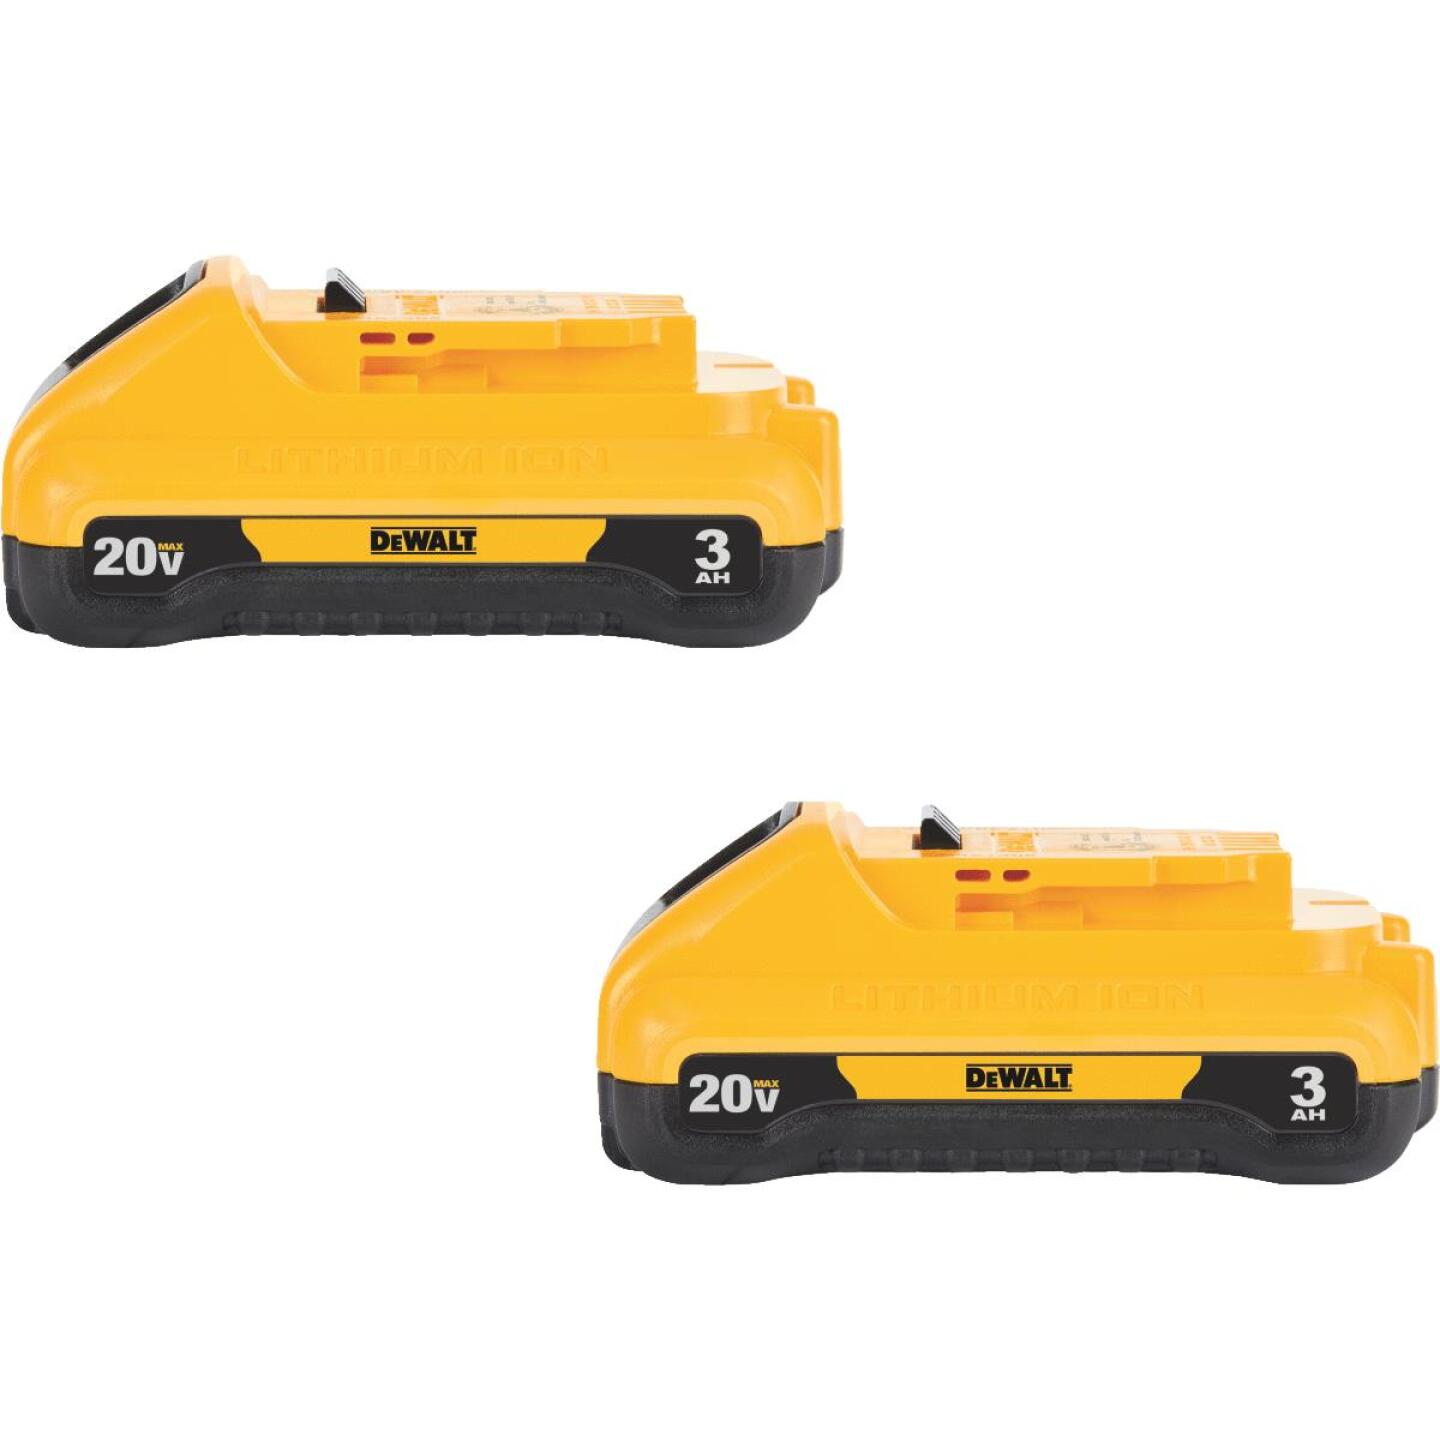 DeWalt 20 Volt MAX Lithium-Ion 3.0 Ah Compact Tool Battery (2-Pack) Image 1